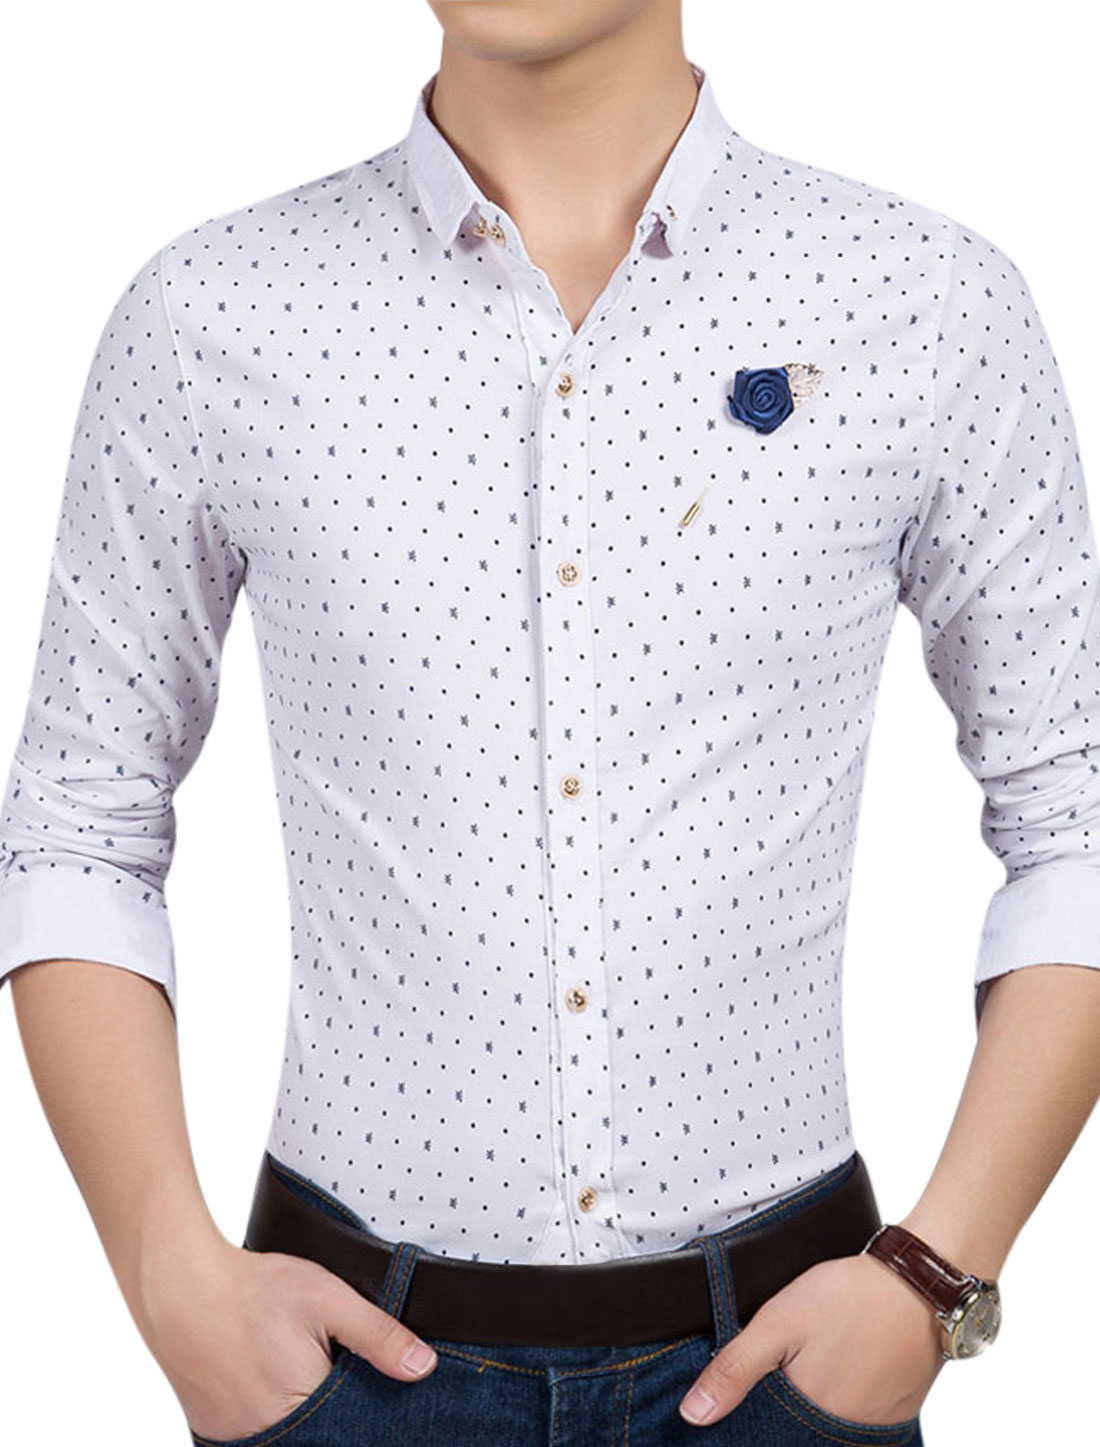 Man Novelty Dots Prints Long Sleeves Button Down Casual Shirt w Brooch White M